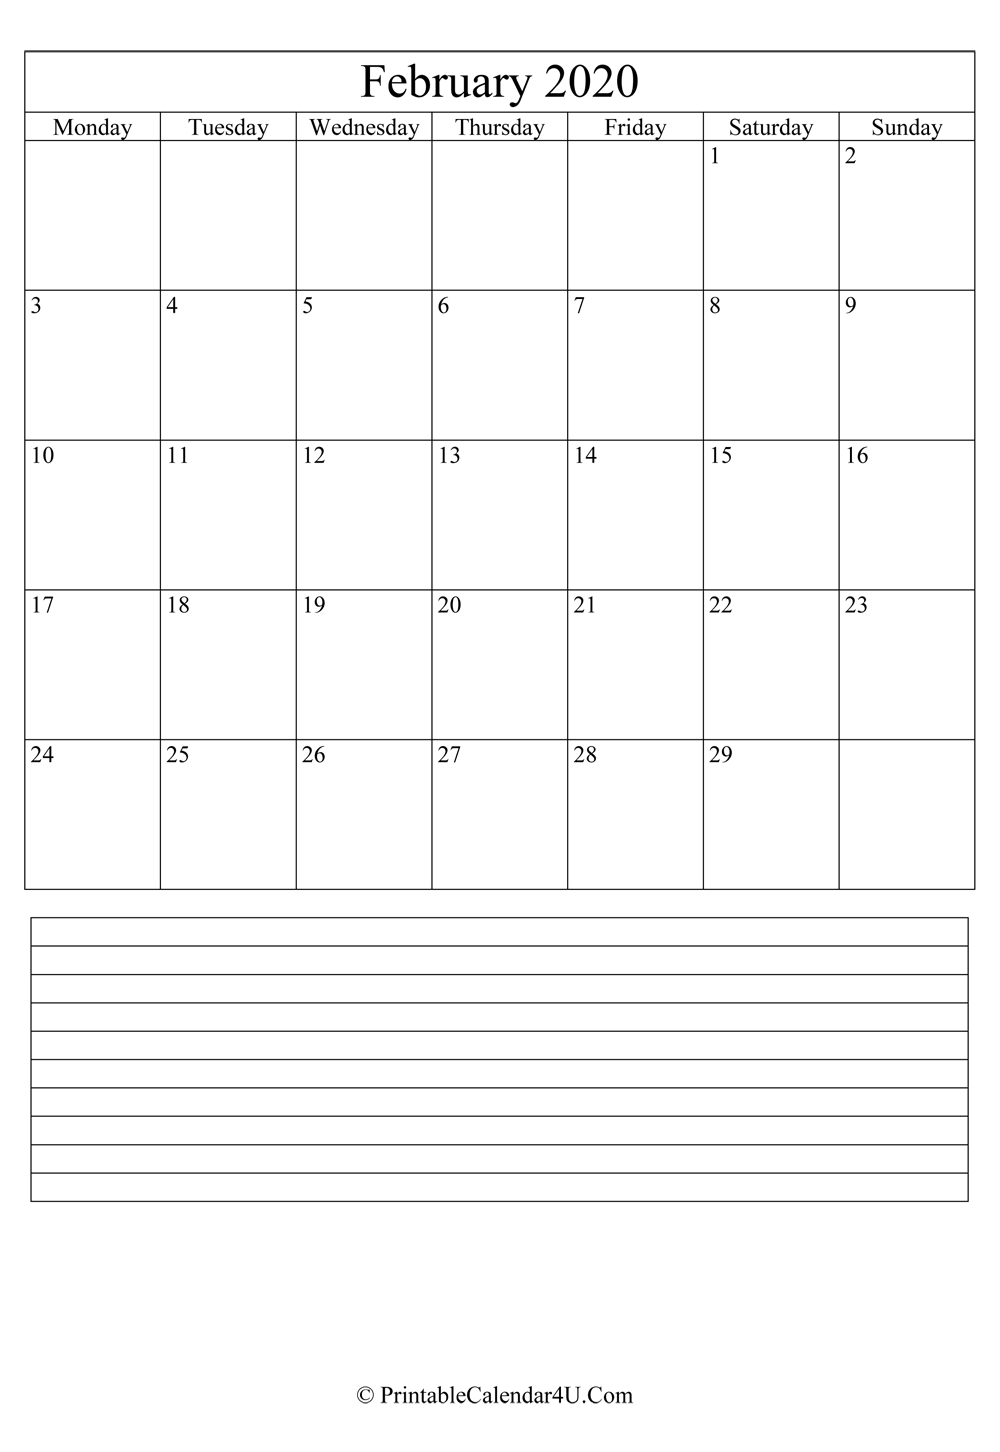 Printable February Calendar 2020 With Notes (Portrait) Calendar Template With Notes Section